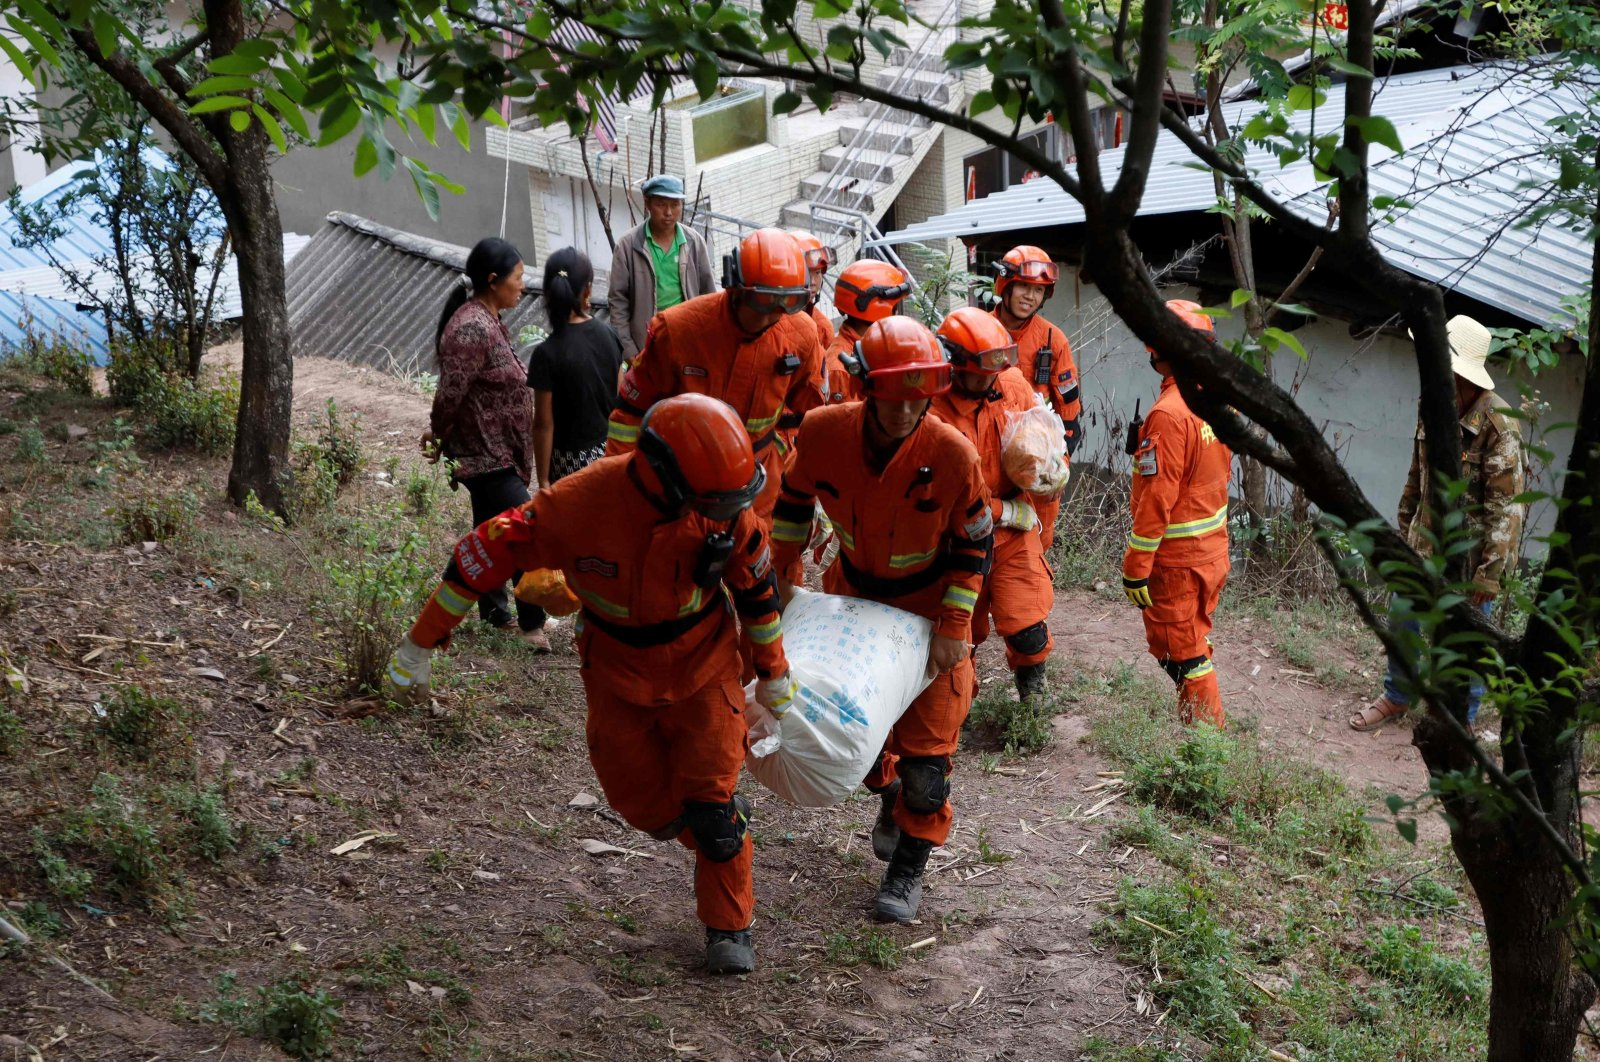 Firefighters carry supplies for people displaced by an overnight earthquake in Yangbi County, Dali Prefecture in China's southwest Yunnan province on May 22, 2021. (STR / AFP Photo)